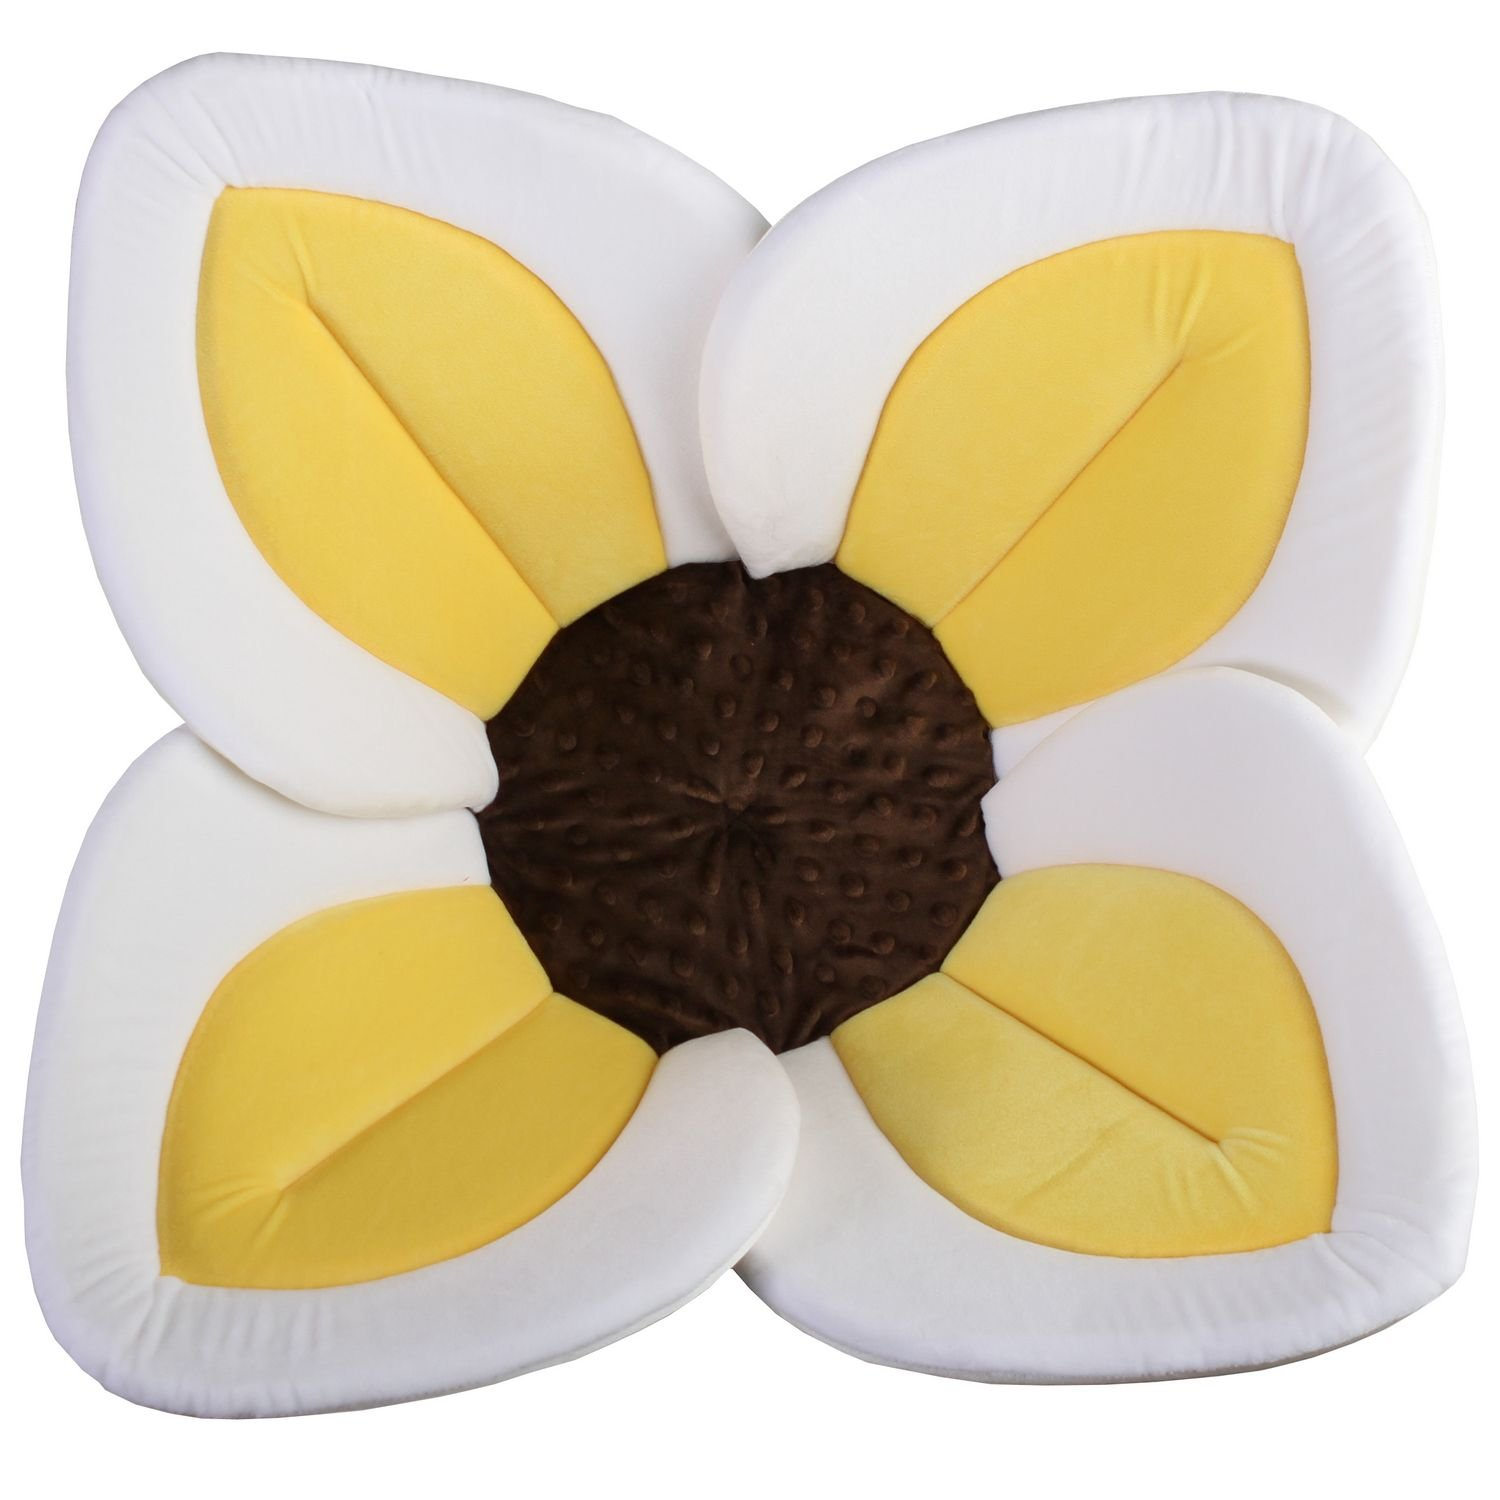 Blooming Bath Lotus - Baby Bath (Yellow)